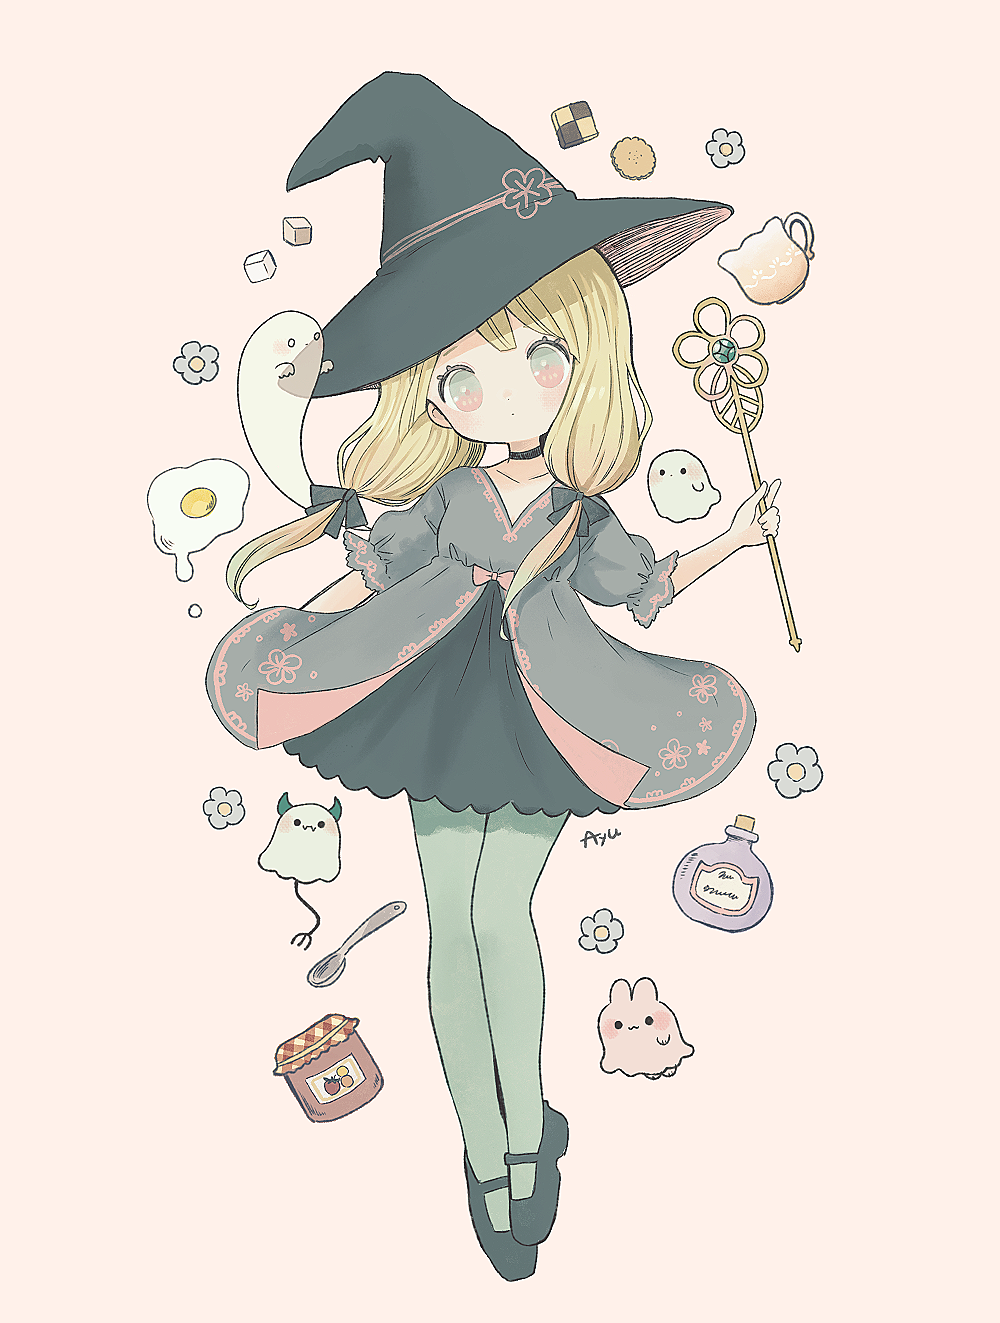 1girl ayu_(mog) black_bow black_dress black_footwear black_headwear blonde_hair blue_flower bow commentary cookie demon_horns demon_tail dress english_commentary flower food fried_egg full_body ghost green_legwear grey_robe hair_bow hat highres holding holding_wand horns jam looking_at_viewer mary_janes original pantyhose potion puffy_short_sleeves puffy_sleeves robe shoes short_sleeves signature simple_background solo spoon sugar_cube tail tan_background twintails wand witch witch_hat